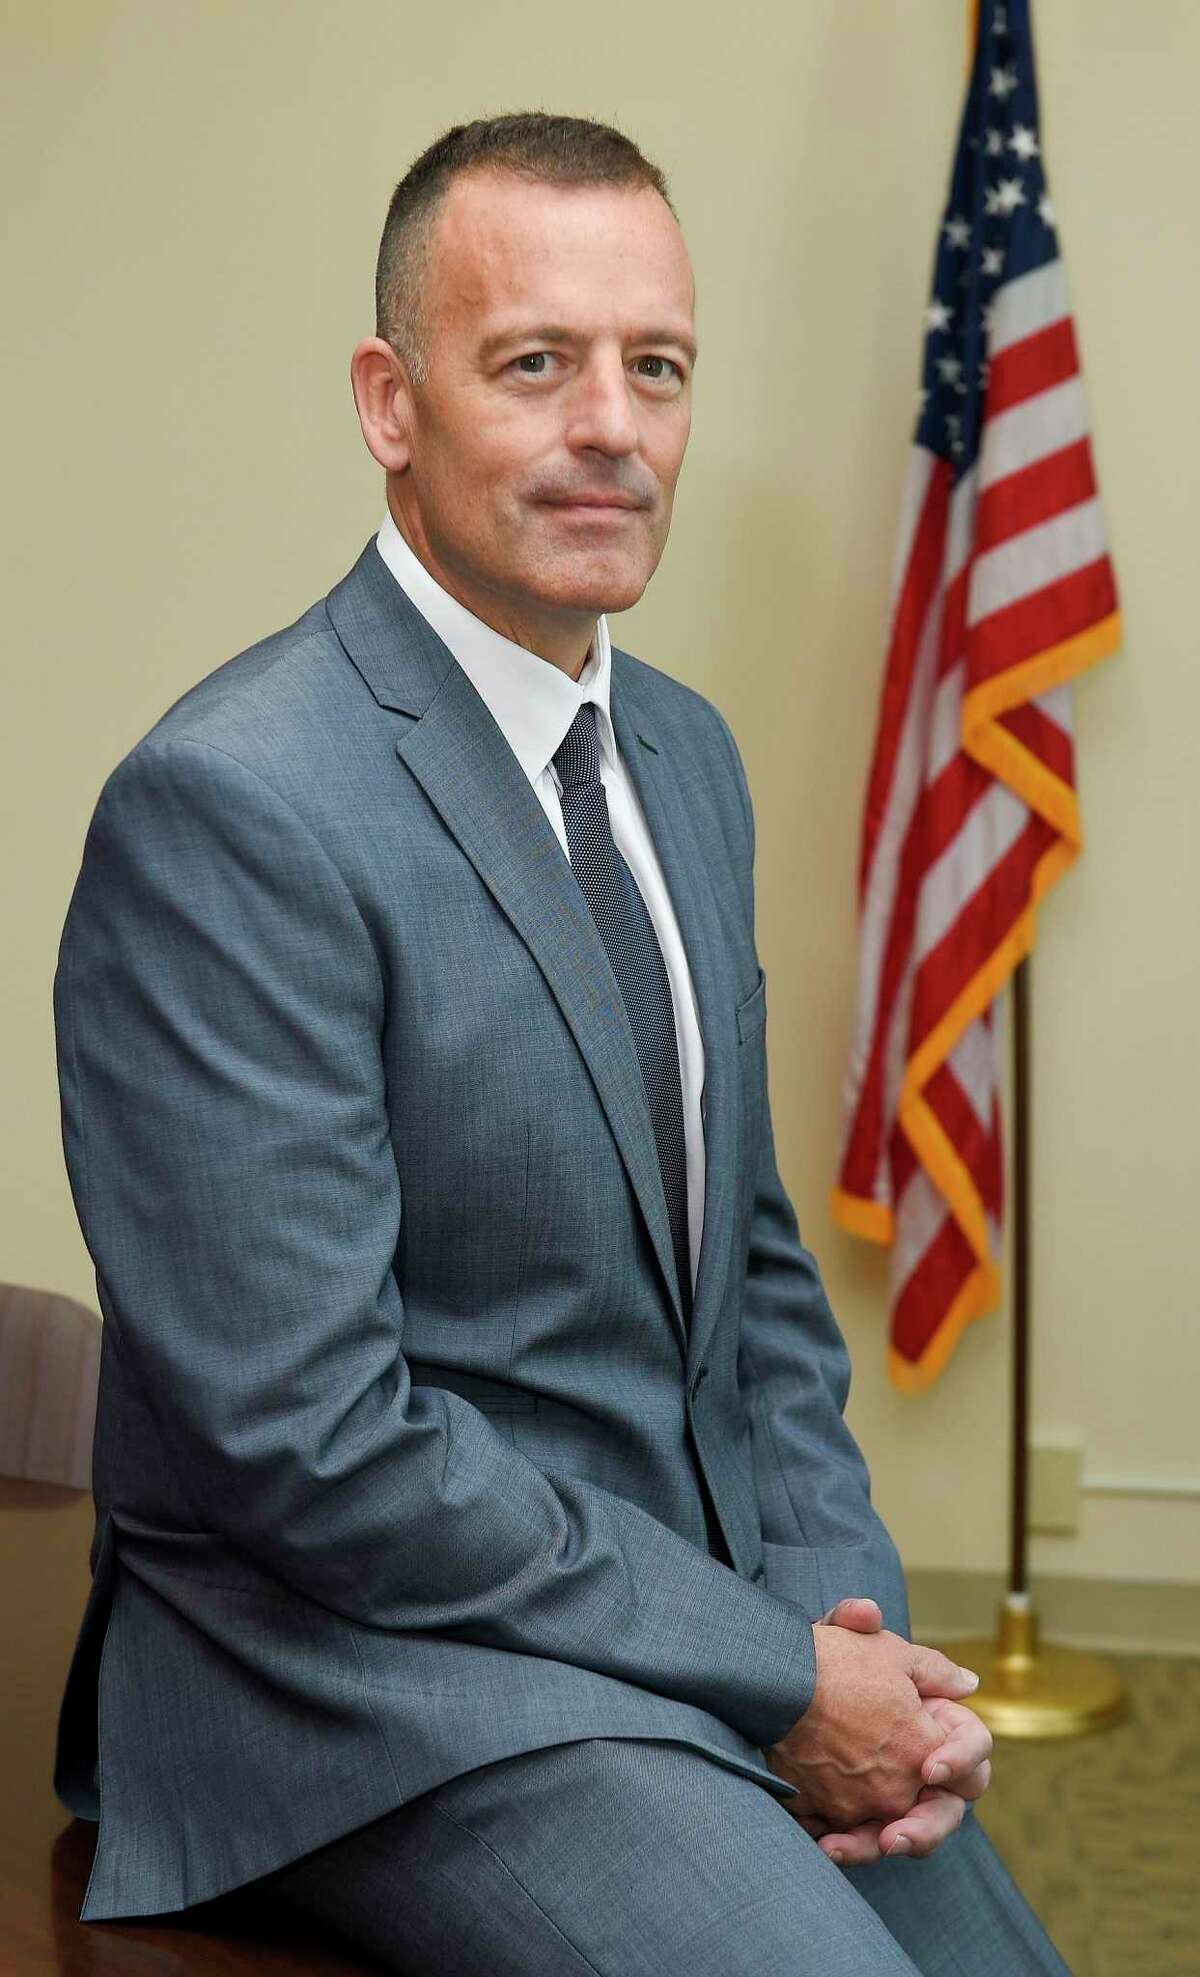 Chris Murtha is photograph on June 12, 2019 in Stamford, Connecticut. Mayor David Martin named Murtha, as the new police chief to replace the retiring Jon Fontneau. Murtha, 53, has been deputy chief of Maryland's Prince George's County, where he has served for the last 20 years. He will become Stamford's 16th police chief.